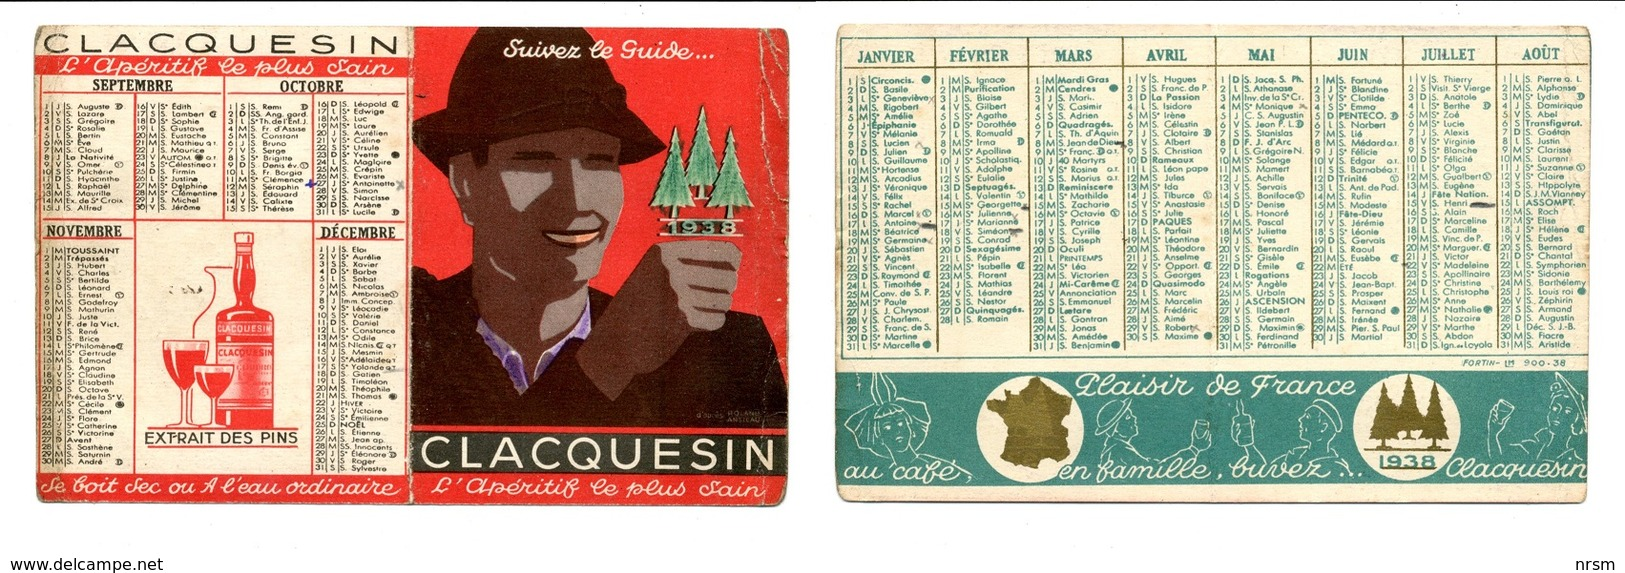 Calendrier 1938 - CLACQUESIN - Kalenders